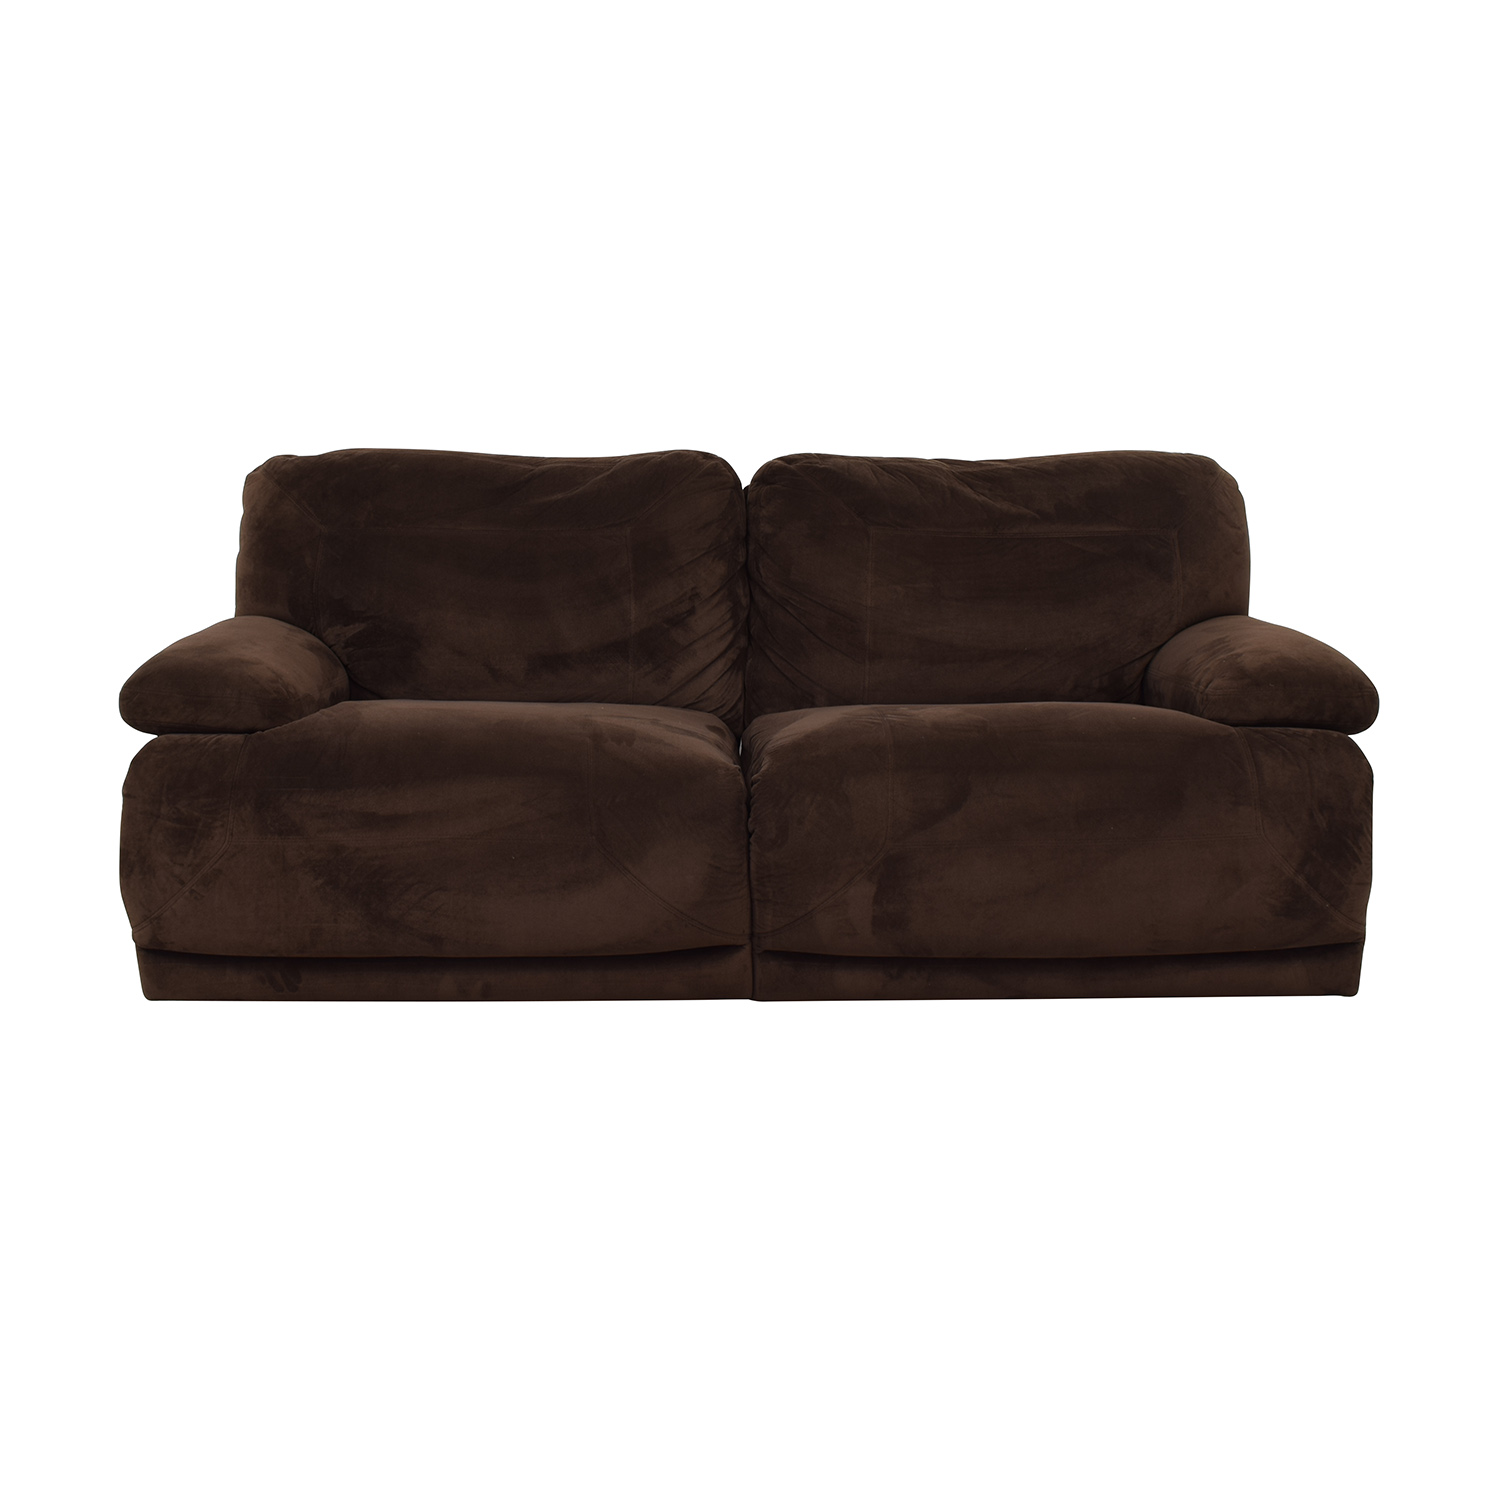 shop Macy's Brown Recliner Couch Macy's